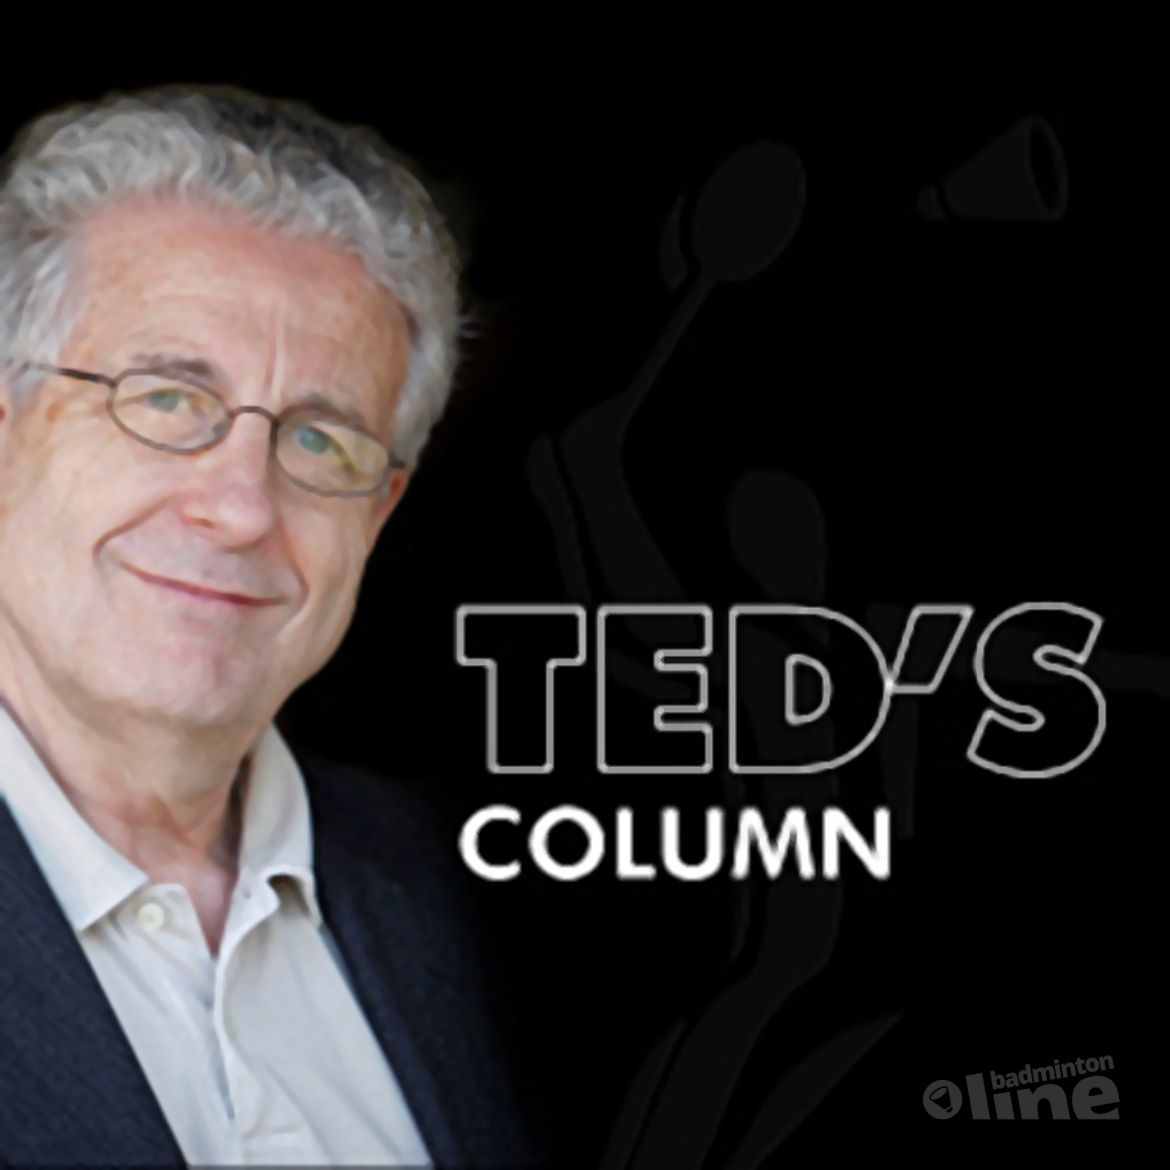 Ted's Column (week 43)